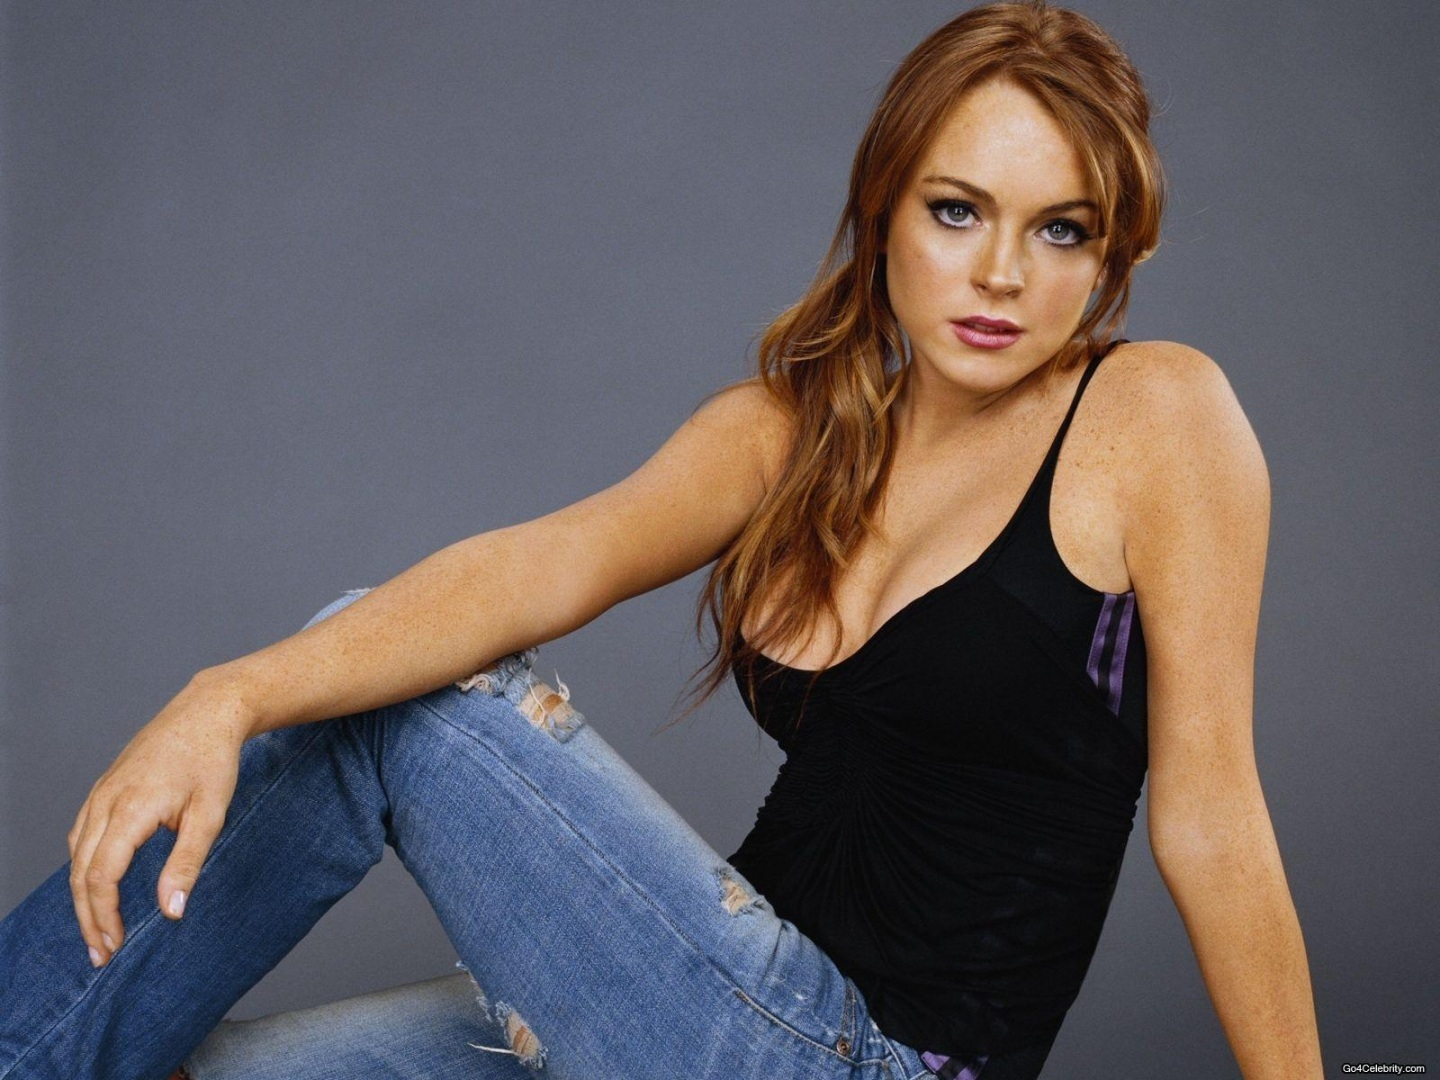 Lindsay Lohan Beauty Wallpaper Celebrity Photo Lindsay Lohan Wallpaper Sexy